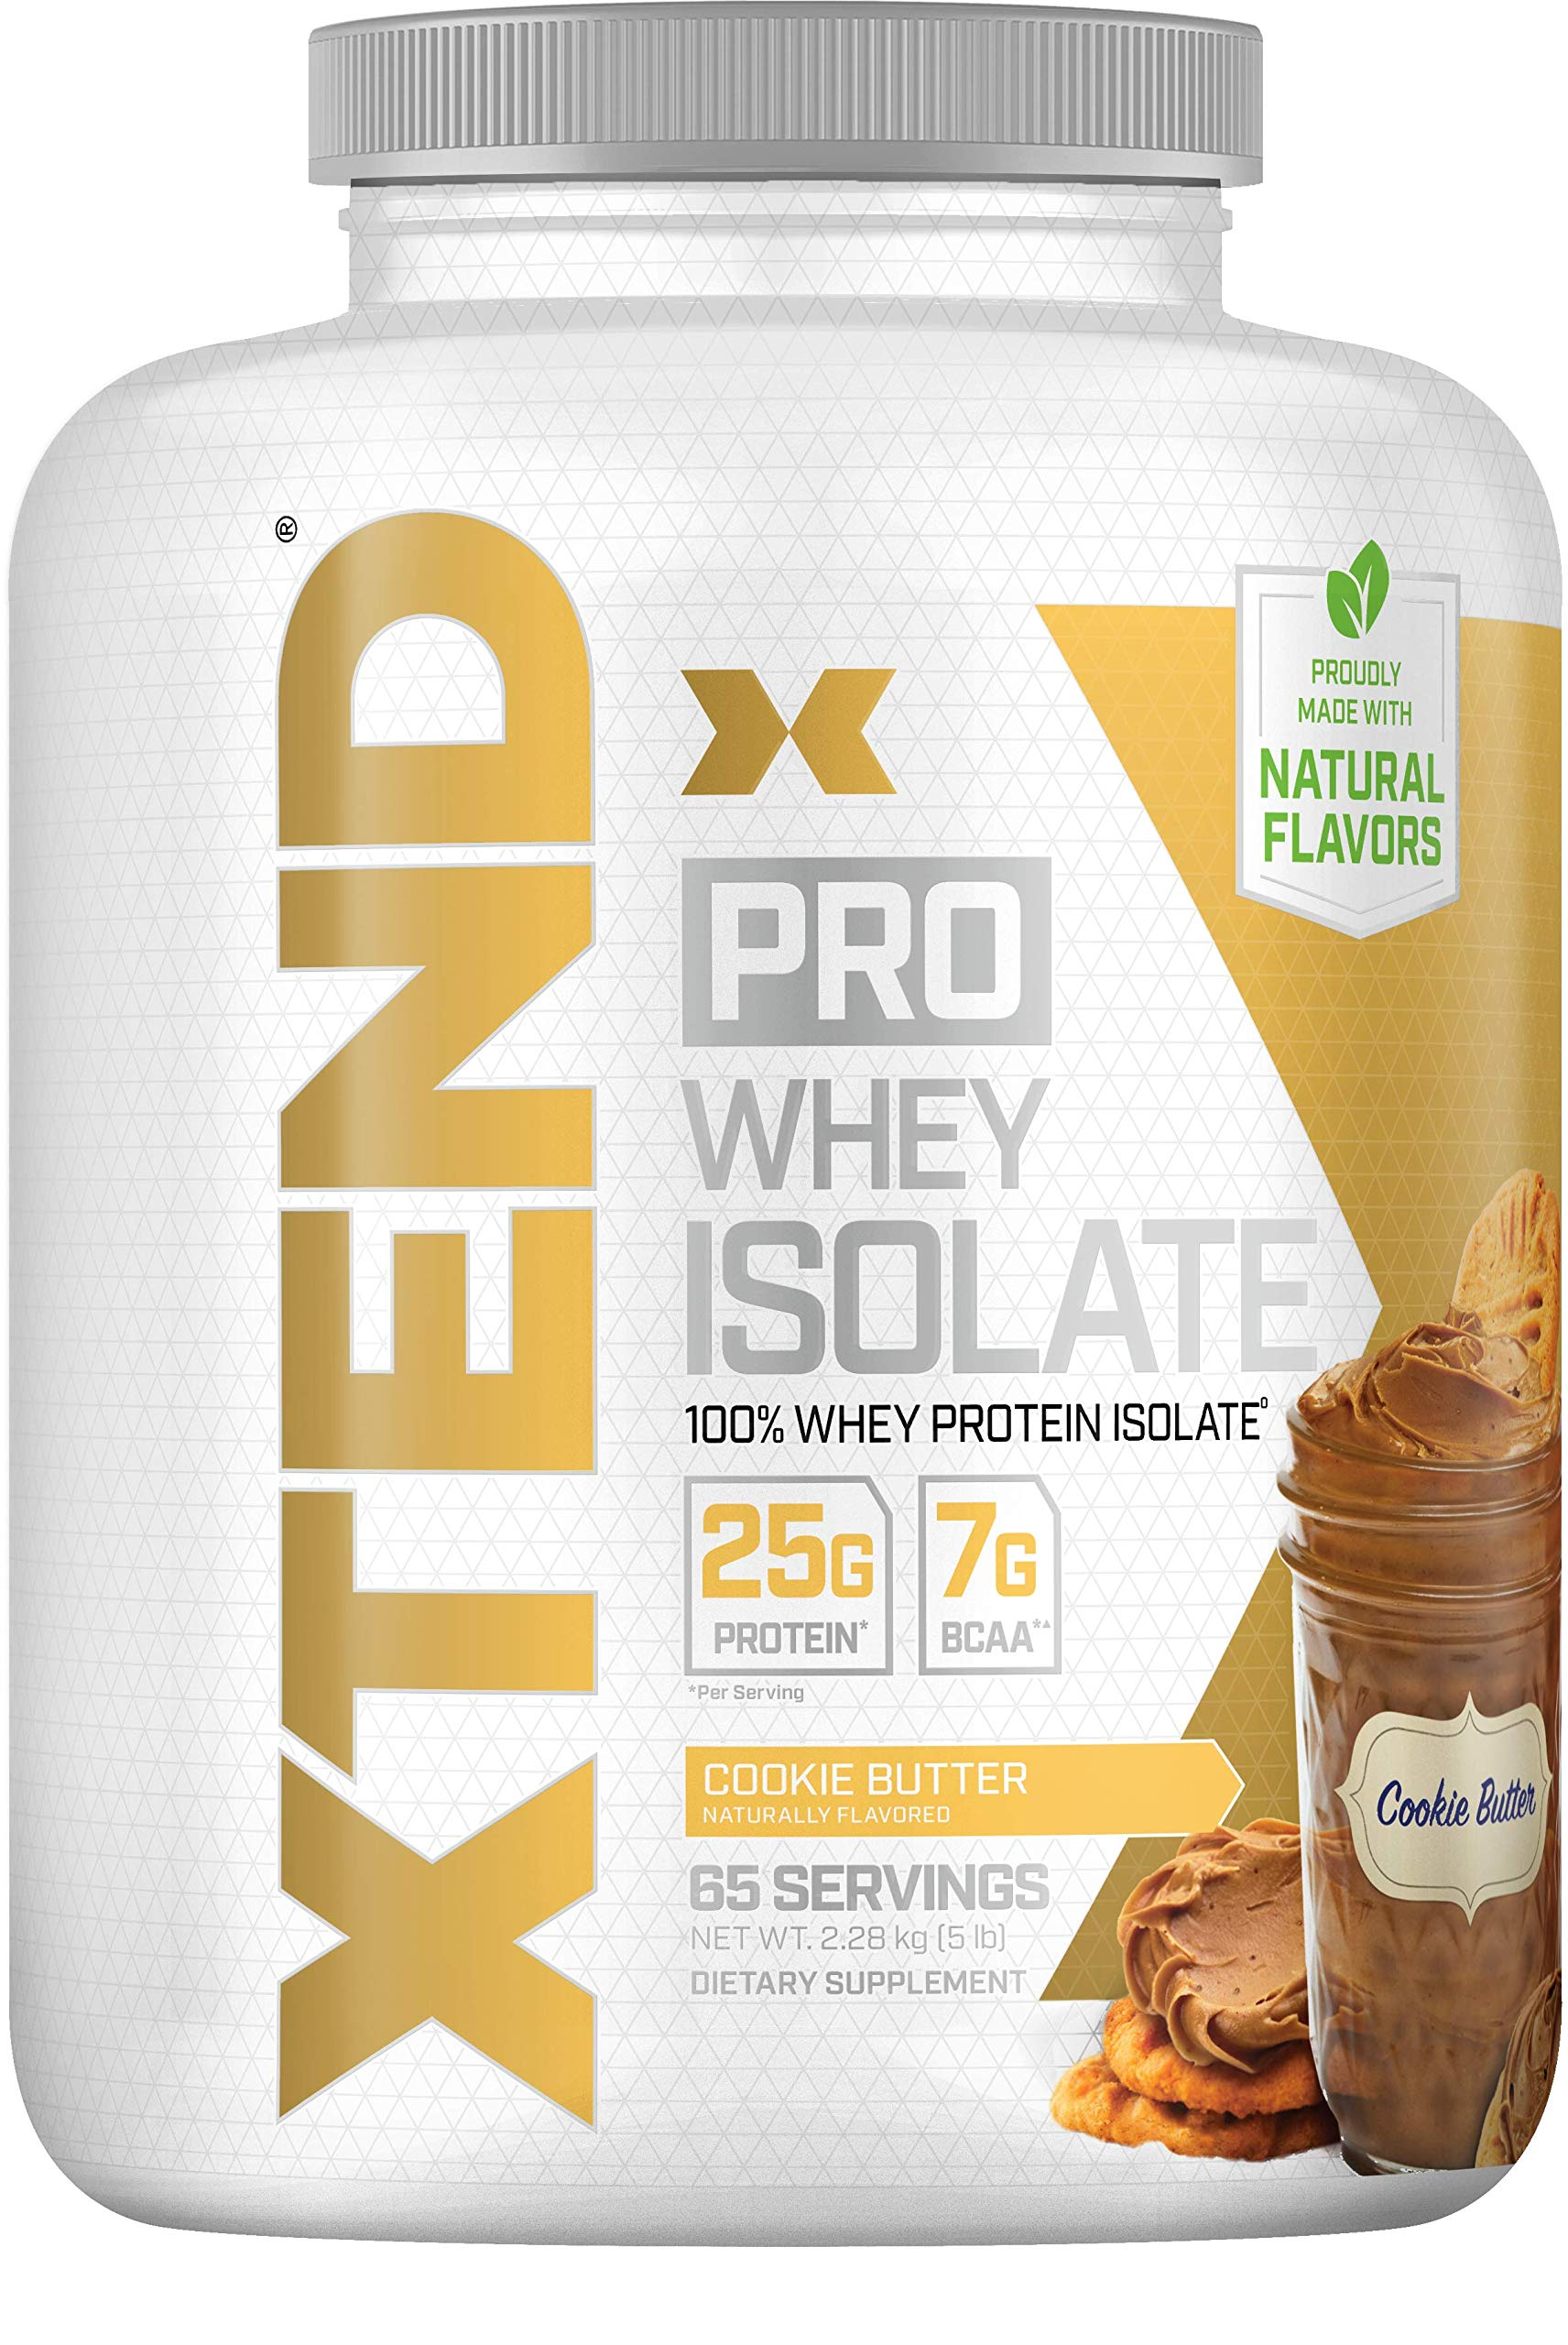 XTEND Pro Protein Powder Cookie Butter | 100% Whey Protein Isolate | Keto Friendly + 7g BCAAs with Natural Flavors | Gluten Free Low Fat Post Workout Drink | 5lbs by Scivation